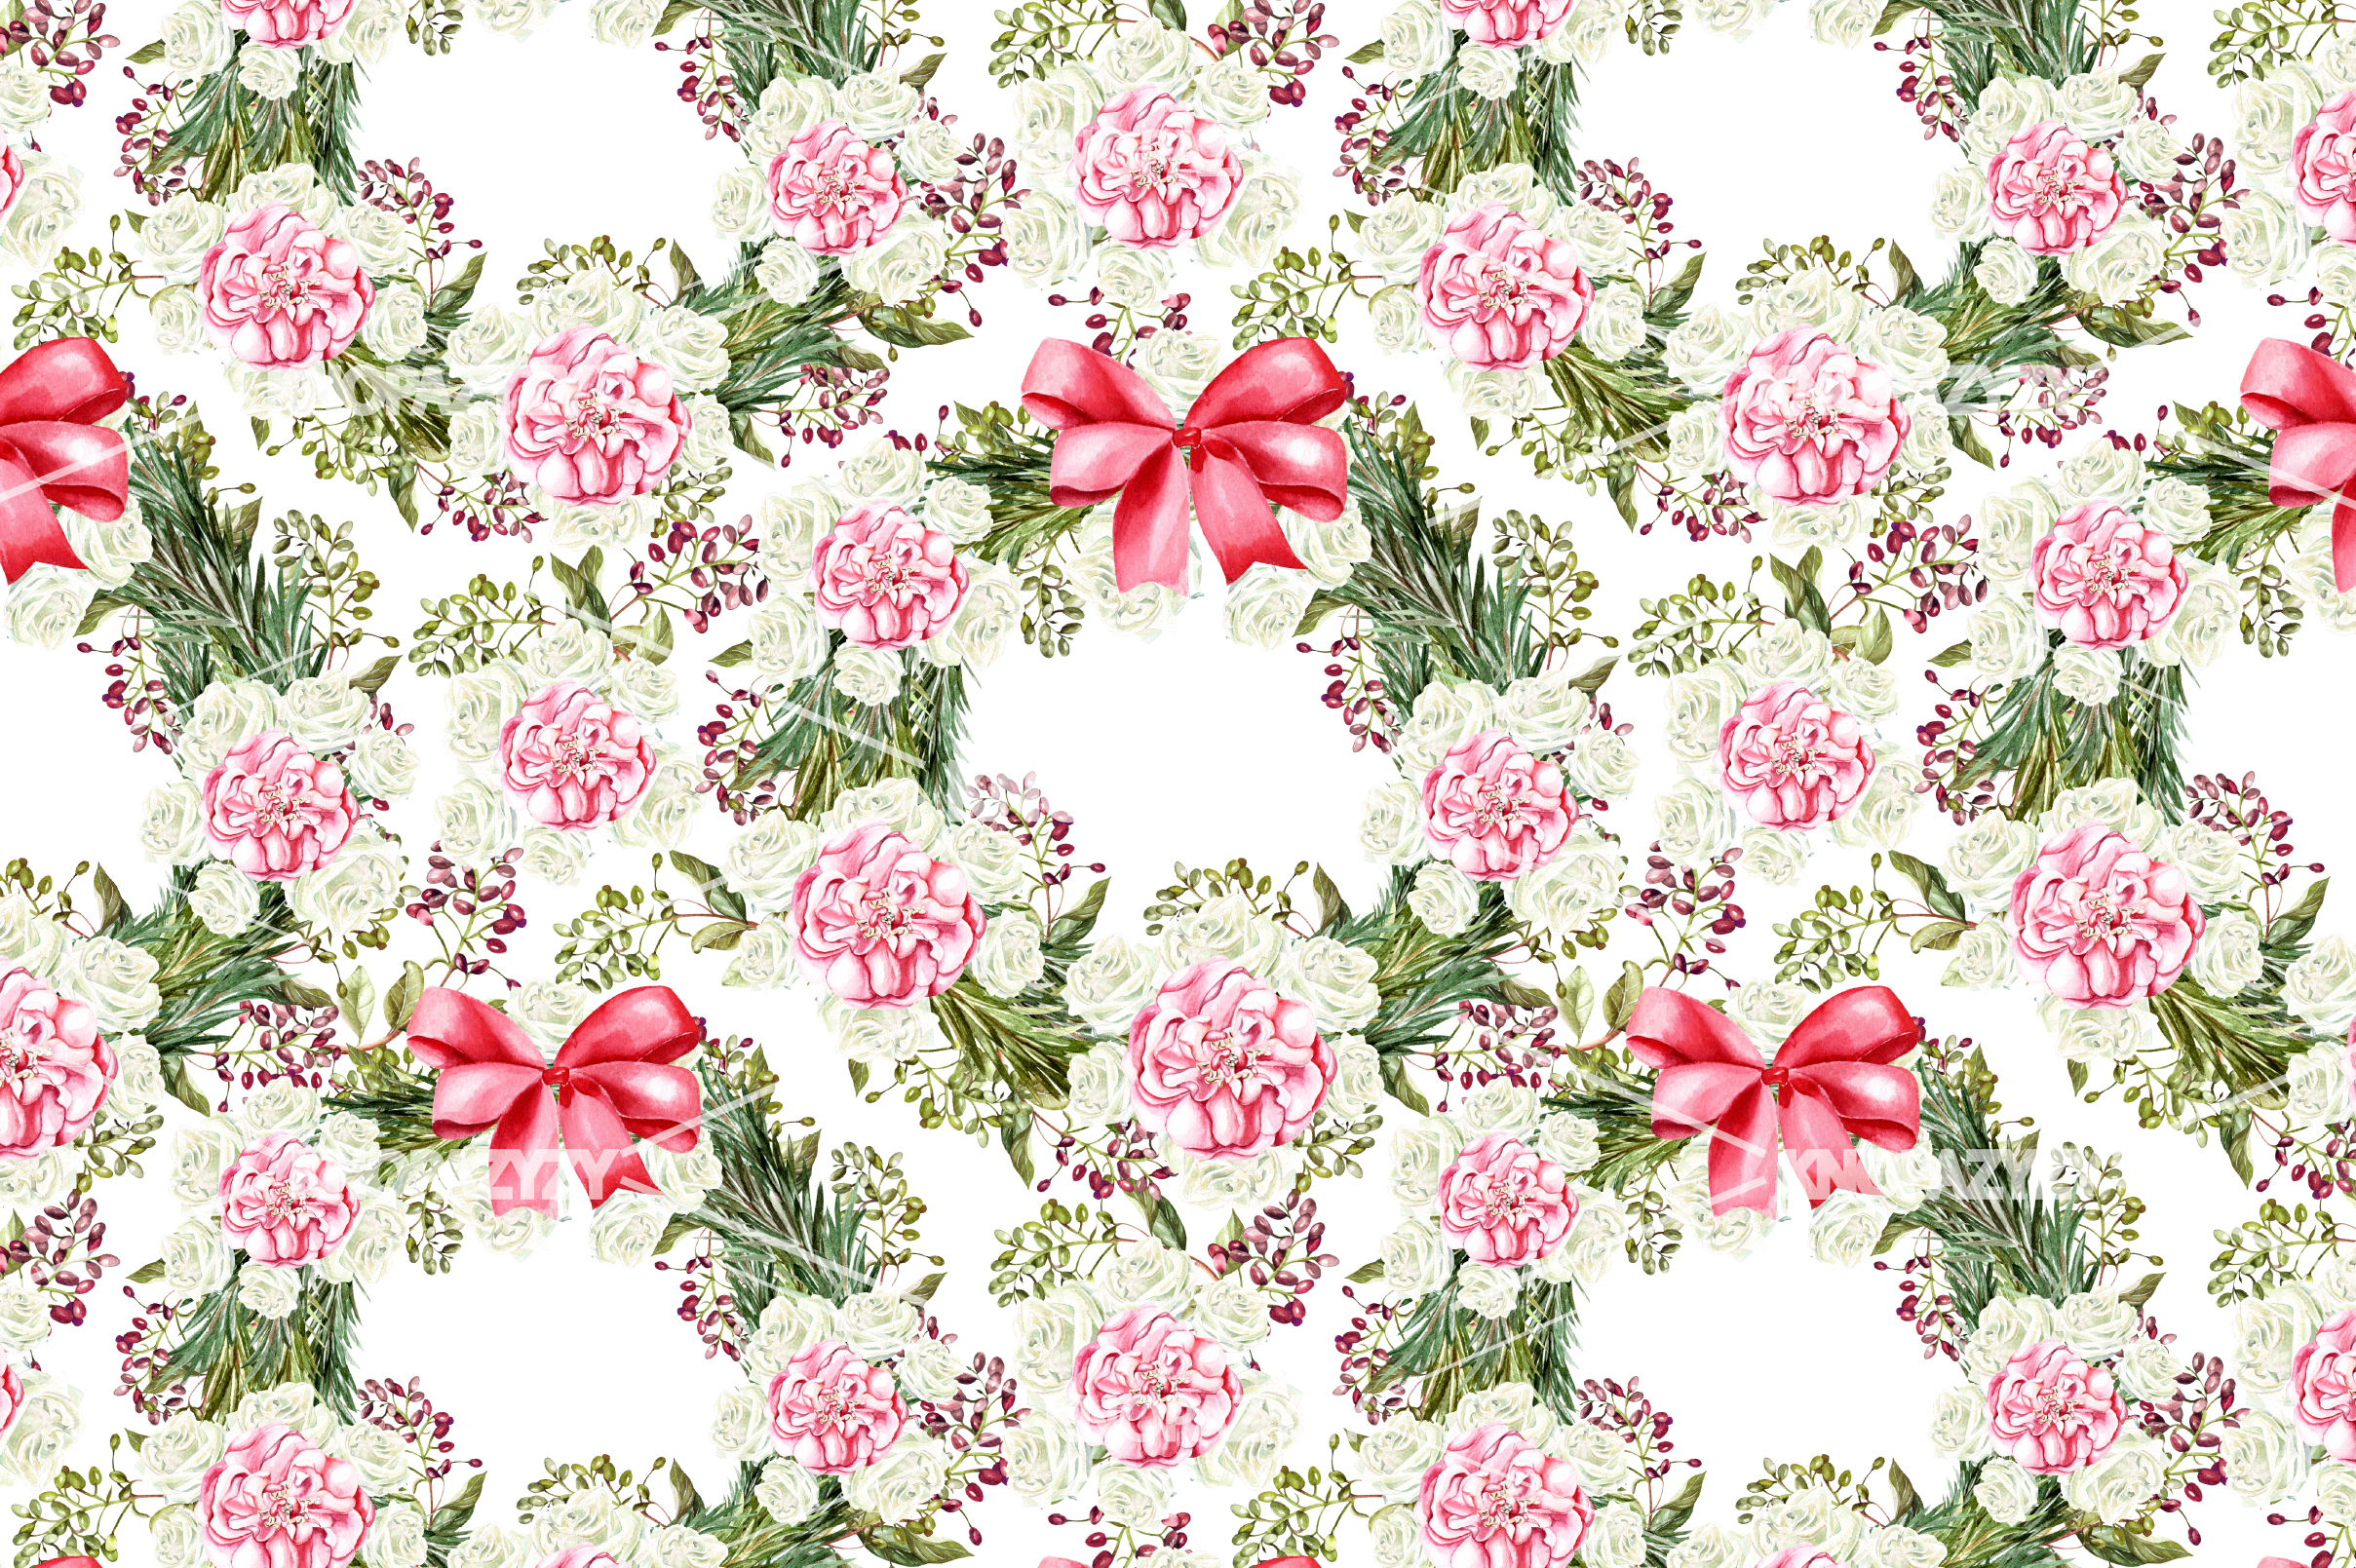 14 Hand drawn watercolor patterns example image 3